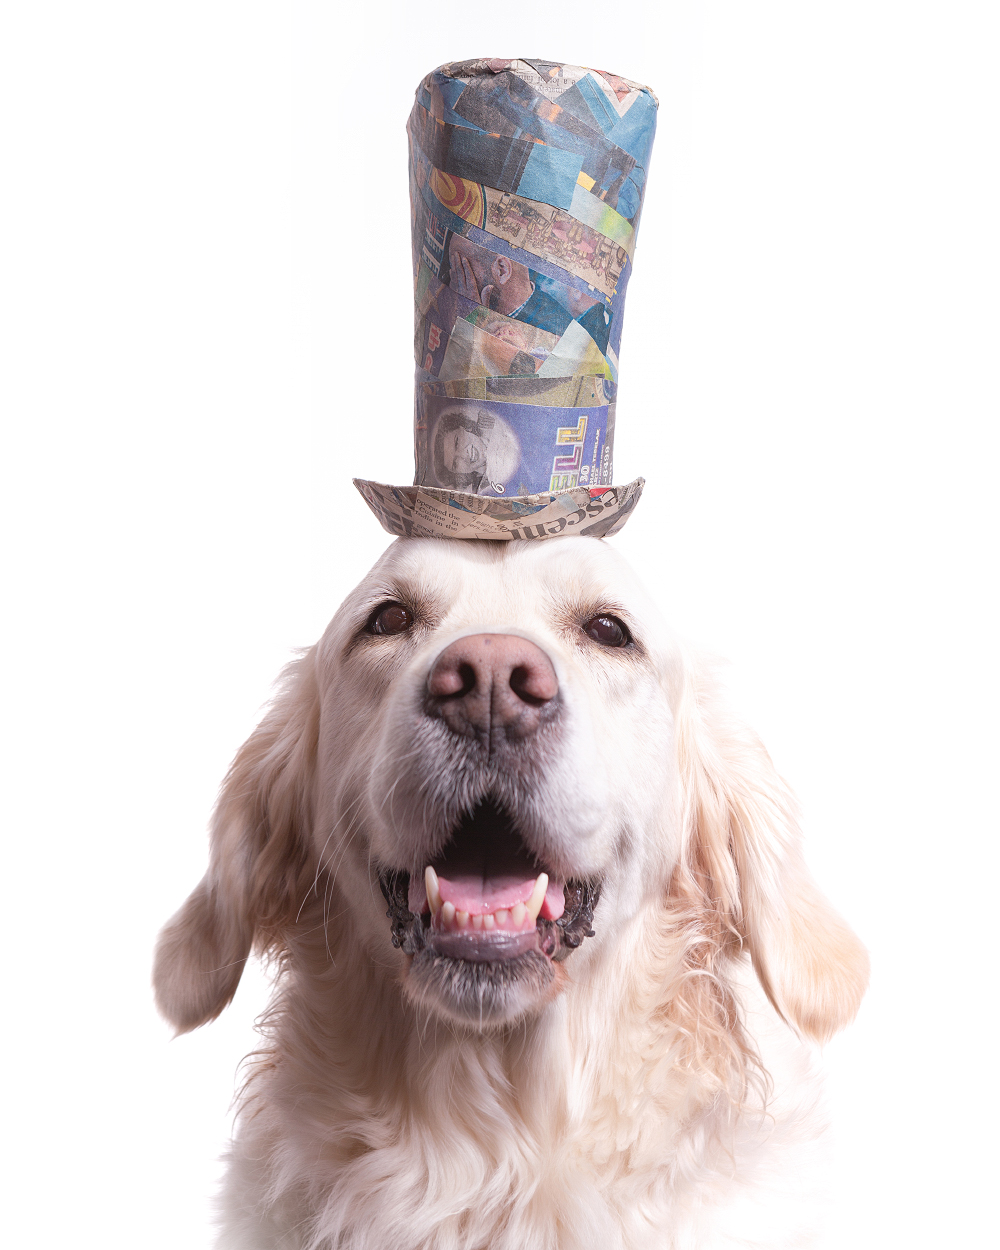 Pet portrait of a smiling Golden Retriever wearing a colorful top hat, photographed at the Puptrait Studio by professional pet photographer, J.B. Shepard. The Puptrait Studio is a dog friendly photography studio located in Baltimore, Maryland -- just minutes from Washington D.C. and Northern Virginia.